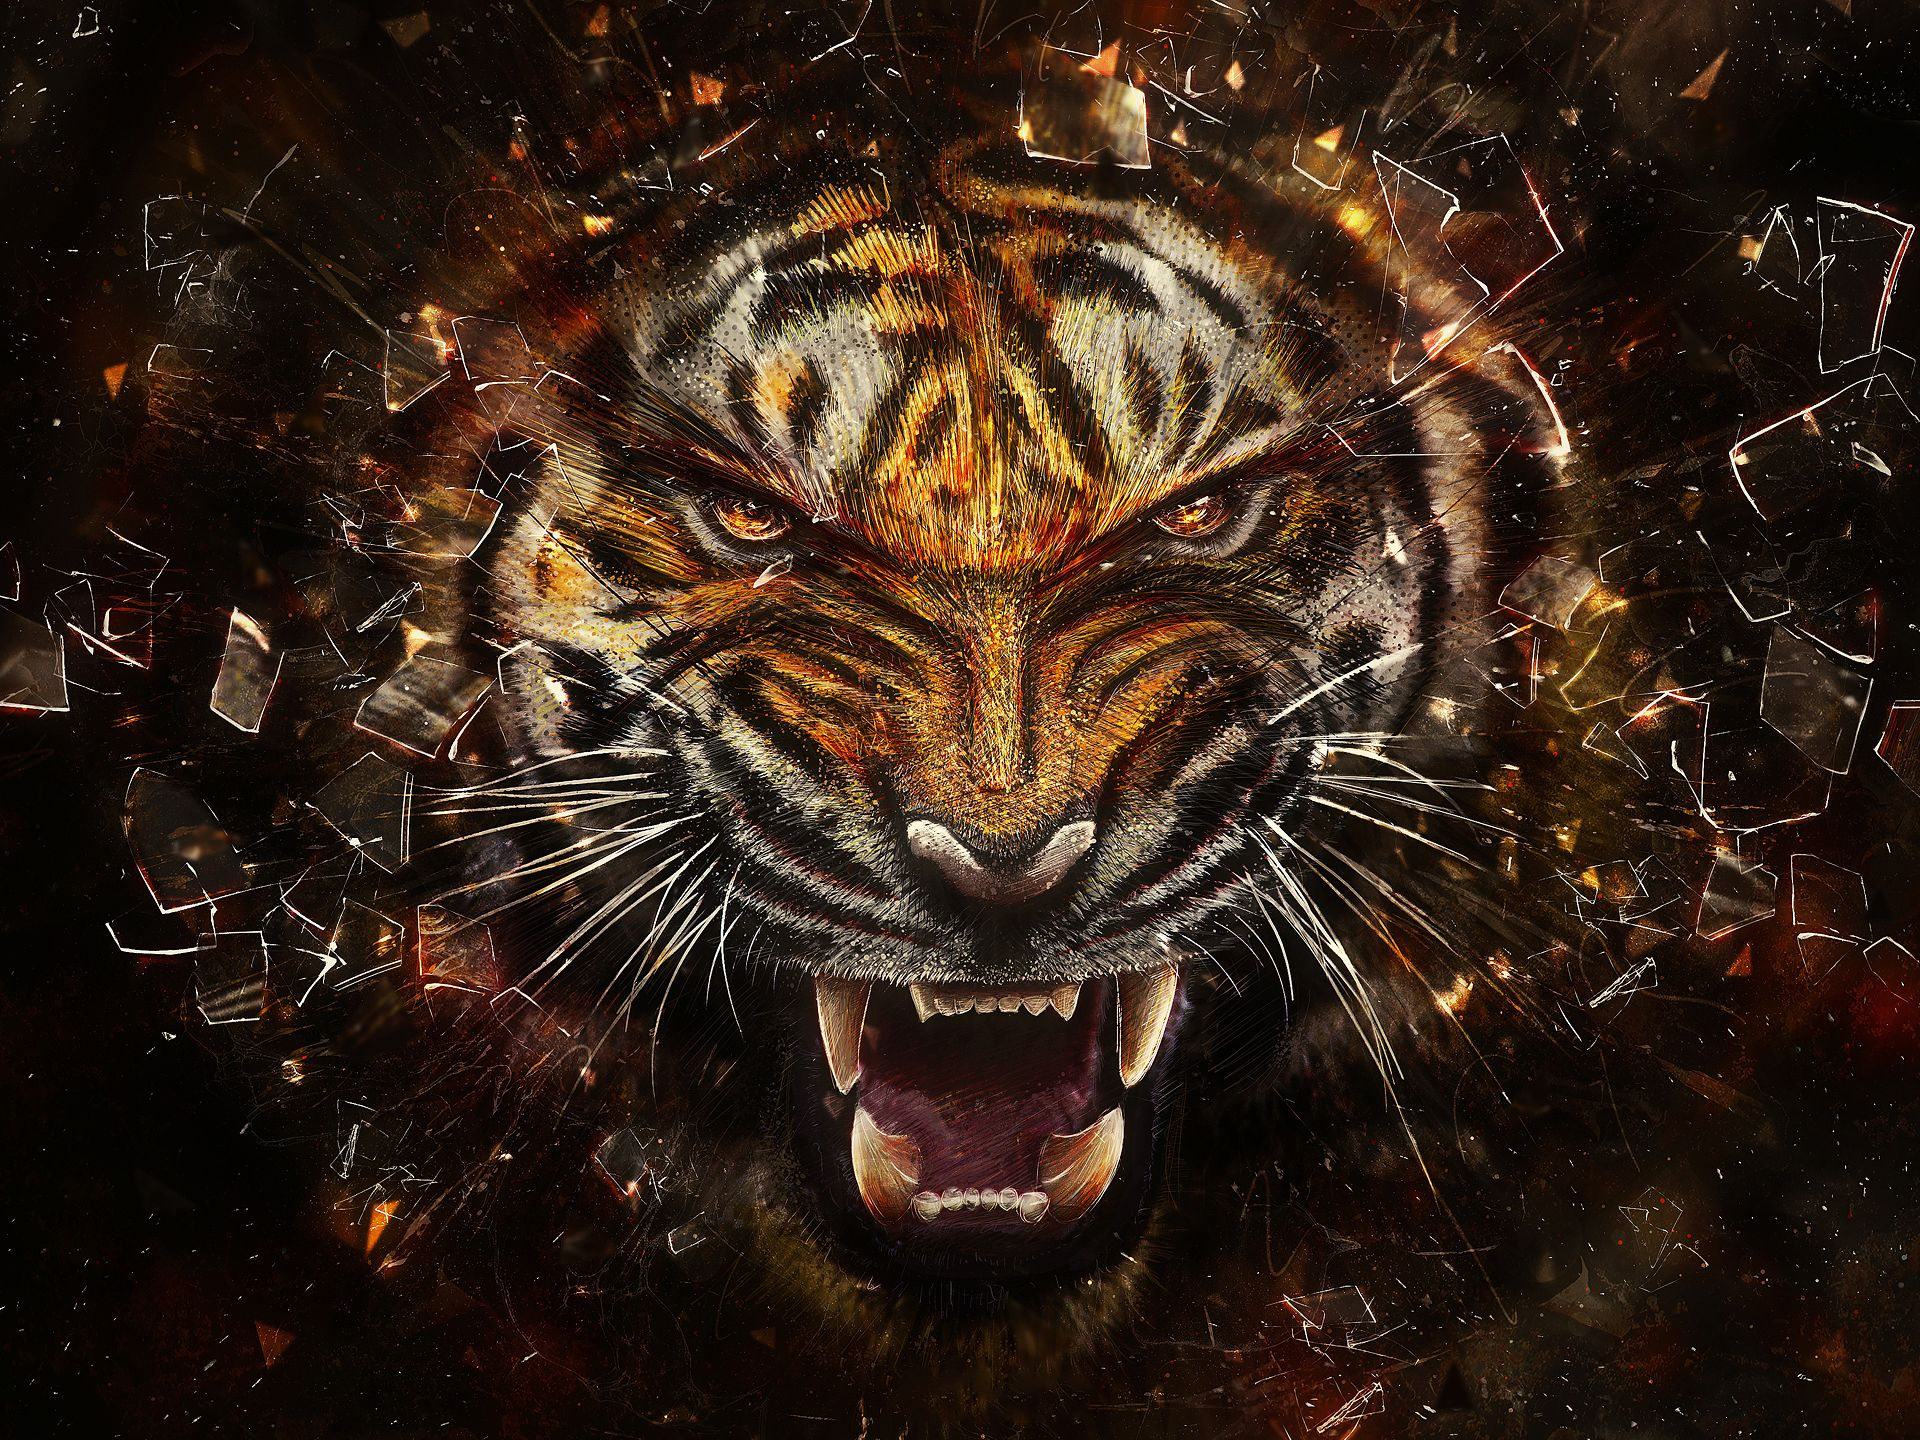 Tigers Images Angry Tiger Hd Wallpaper And Background Photos 31737545